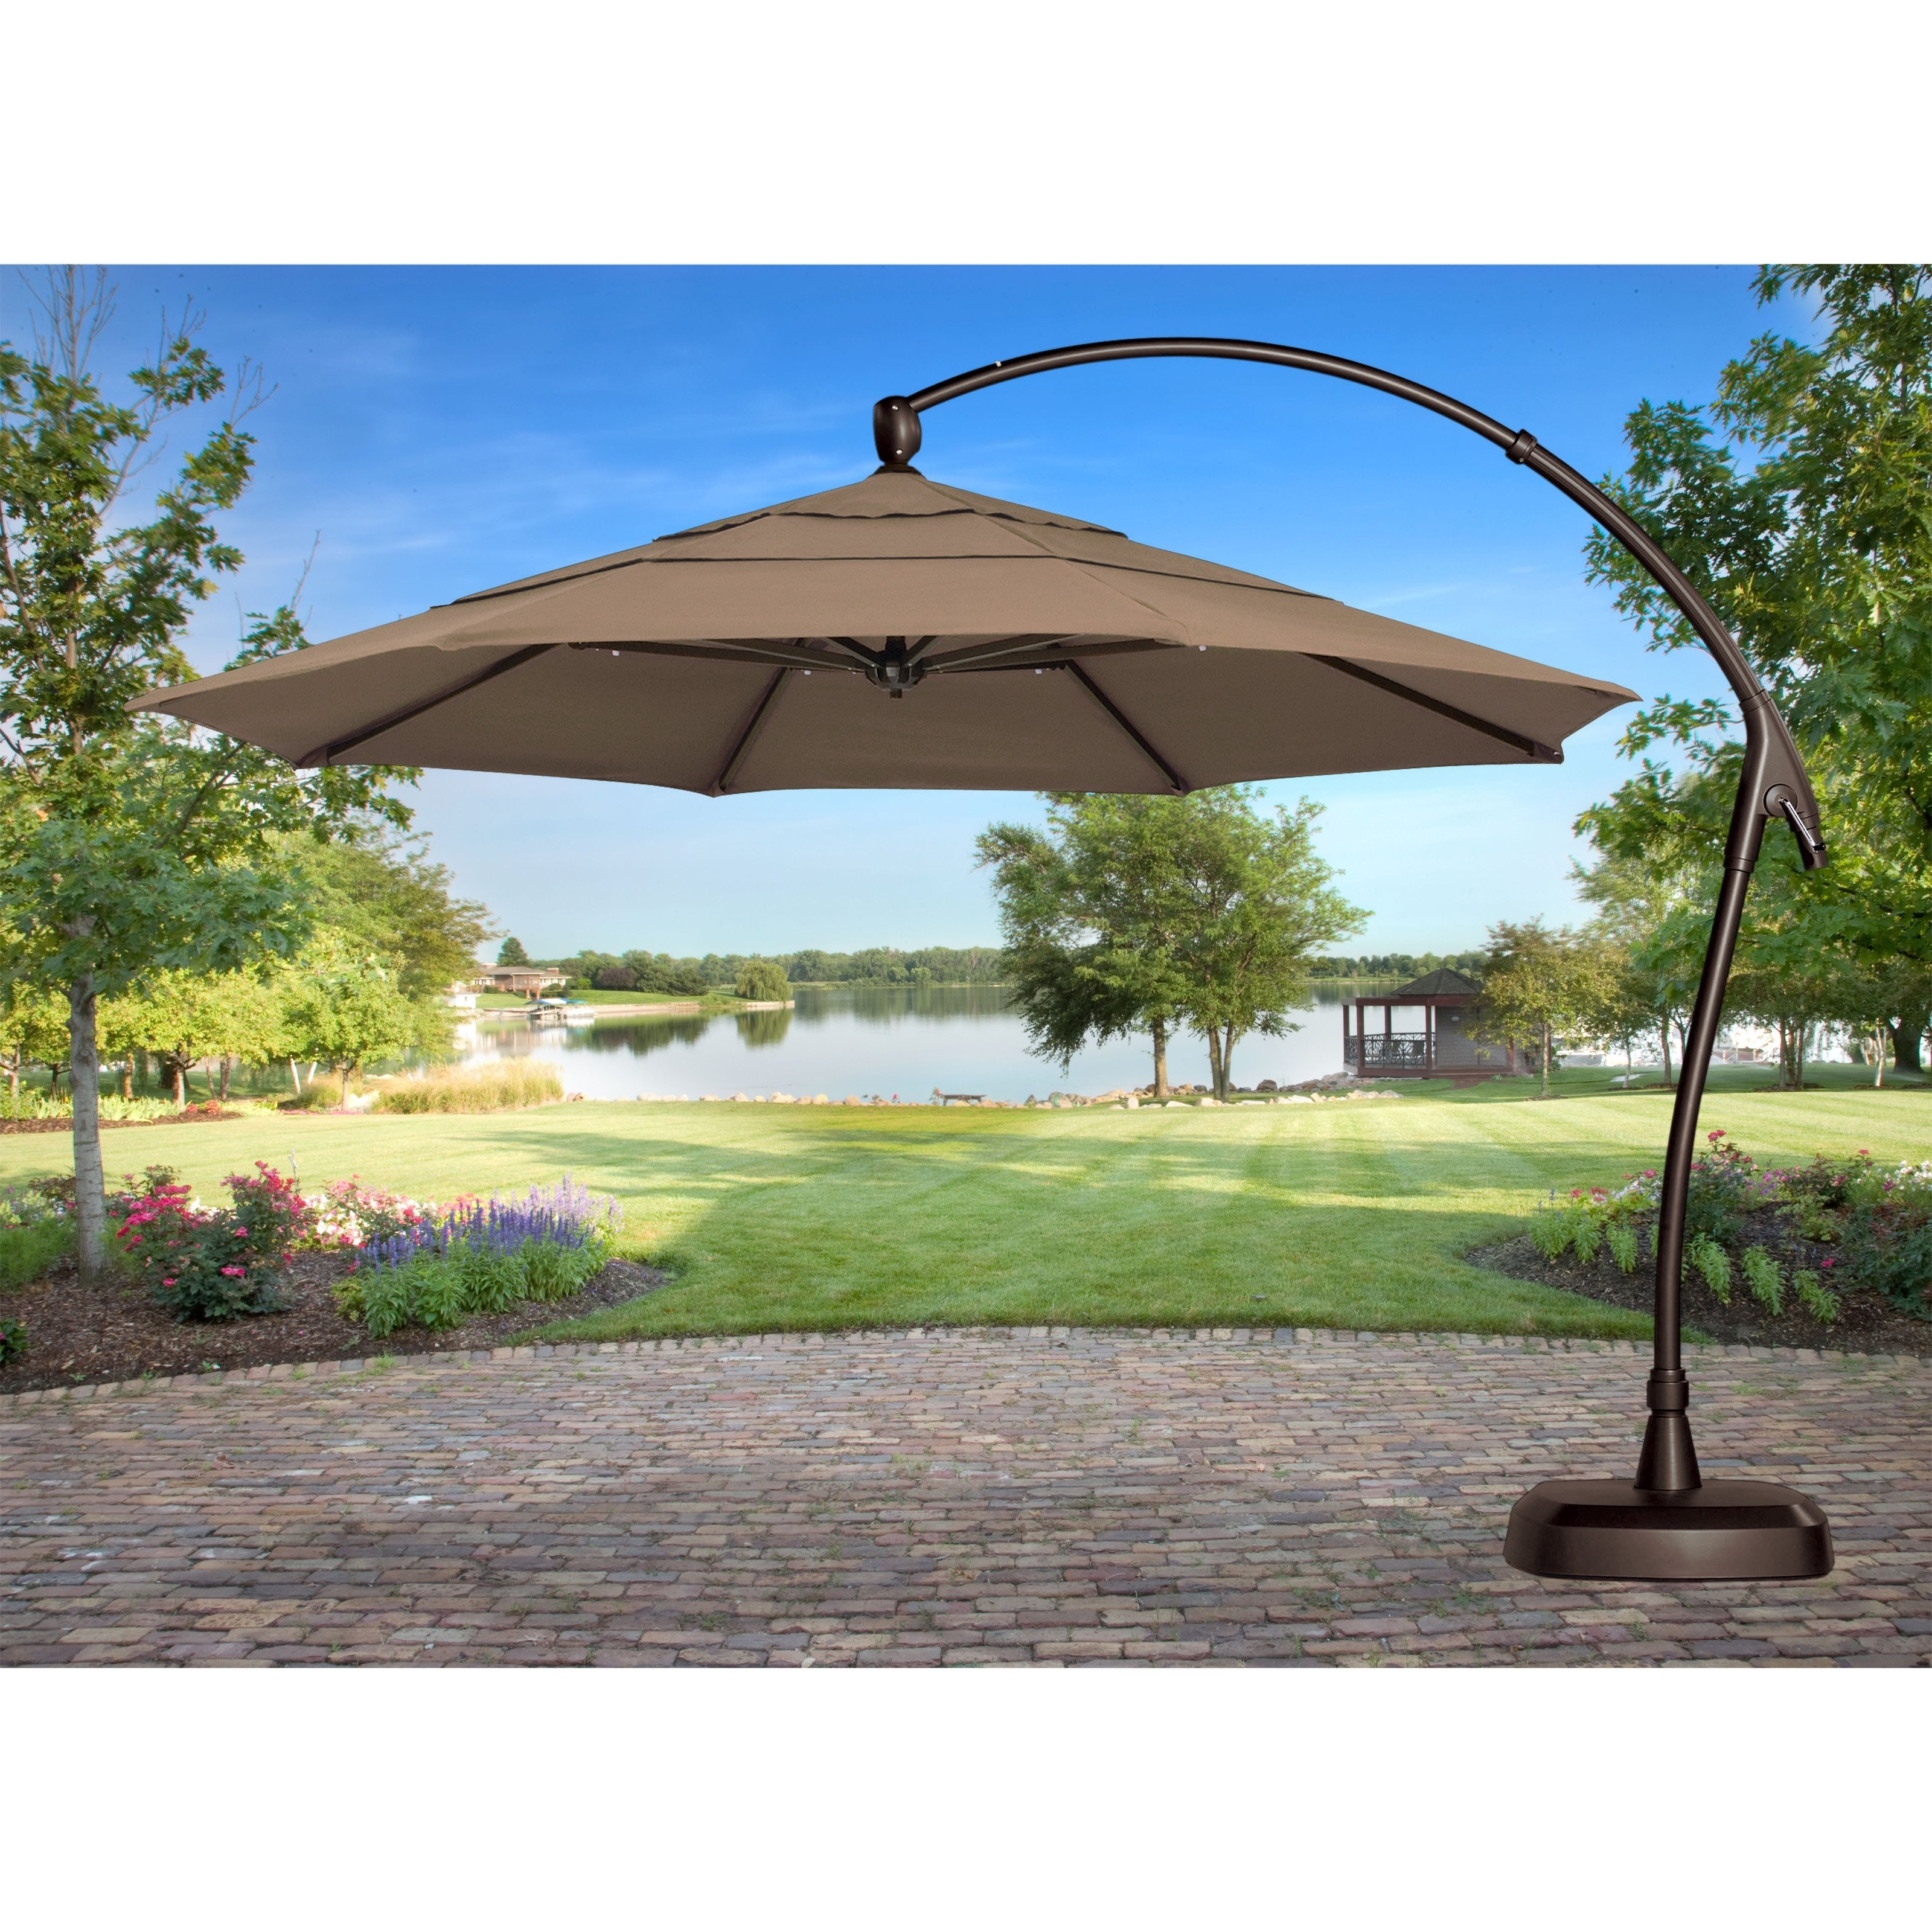 Stylish And Convenient Cantilever Patio Umbrella – Carehomedecor Inside Preferred Patio Umbrellas With Fans (View 19 of 20)